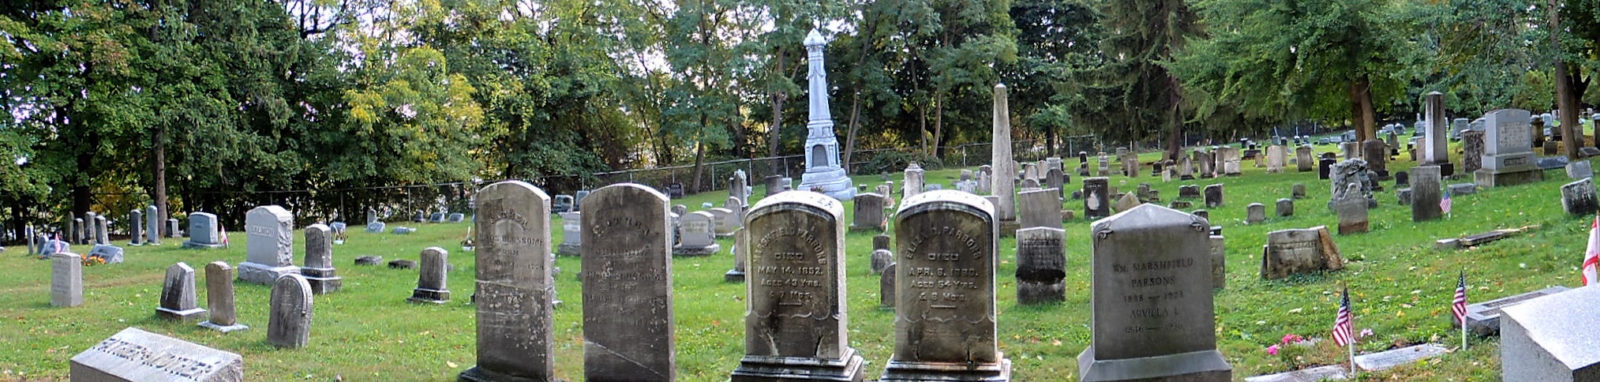 Brighton Cemetery photo by Leo Dodd 2014 from his Flickr page